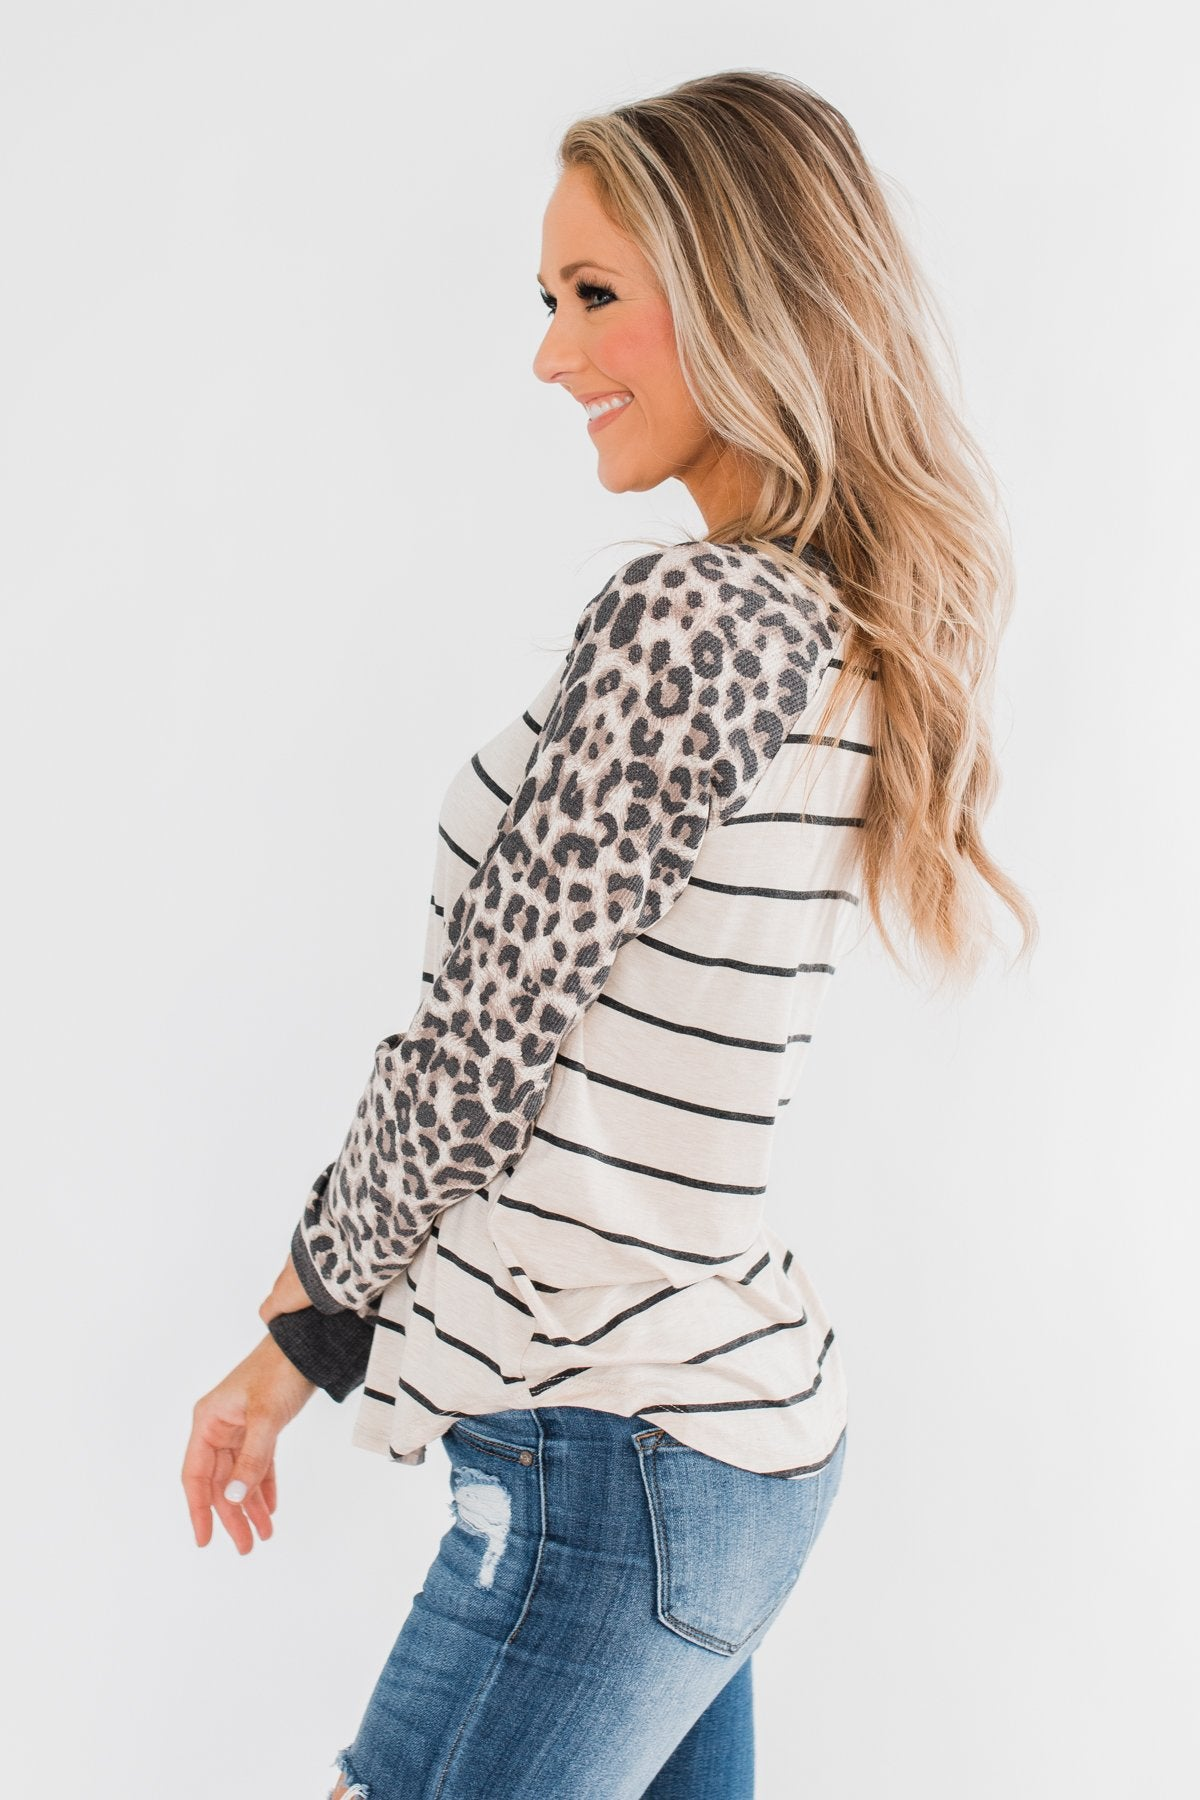 Oh So Fierce Long Sleeve Top- Charcoal & Leopard